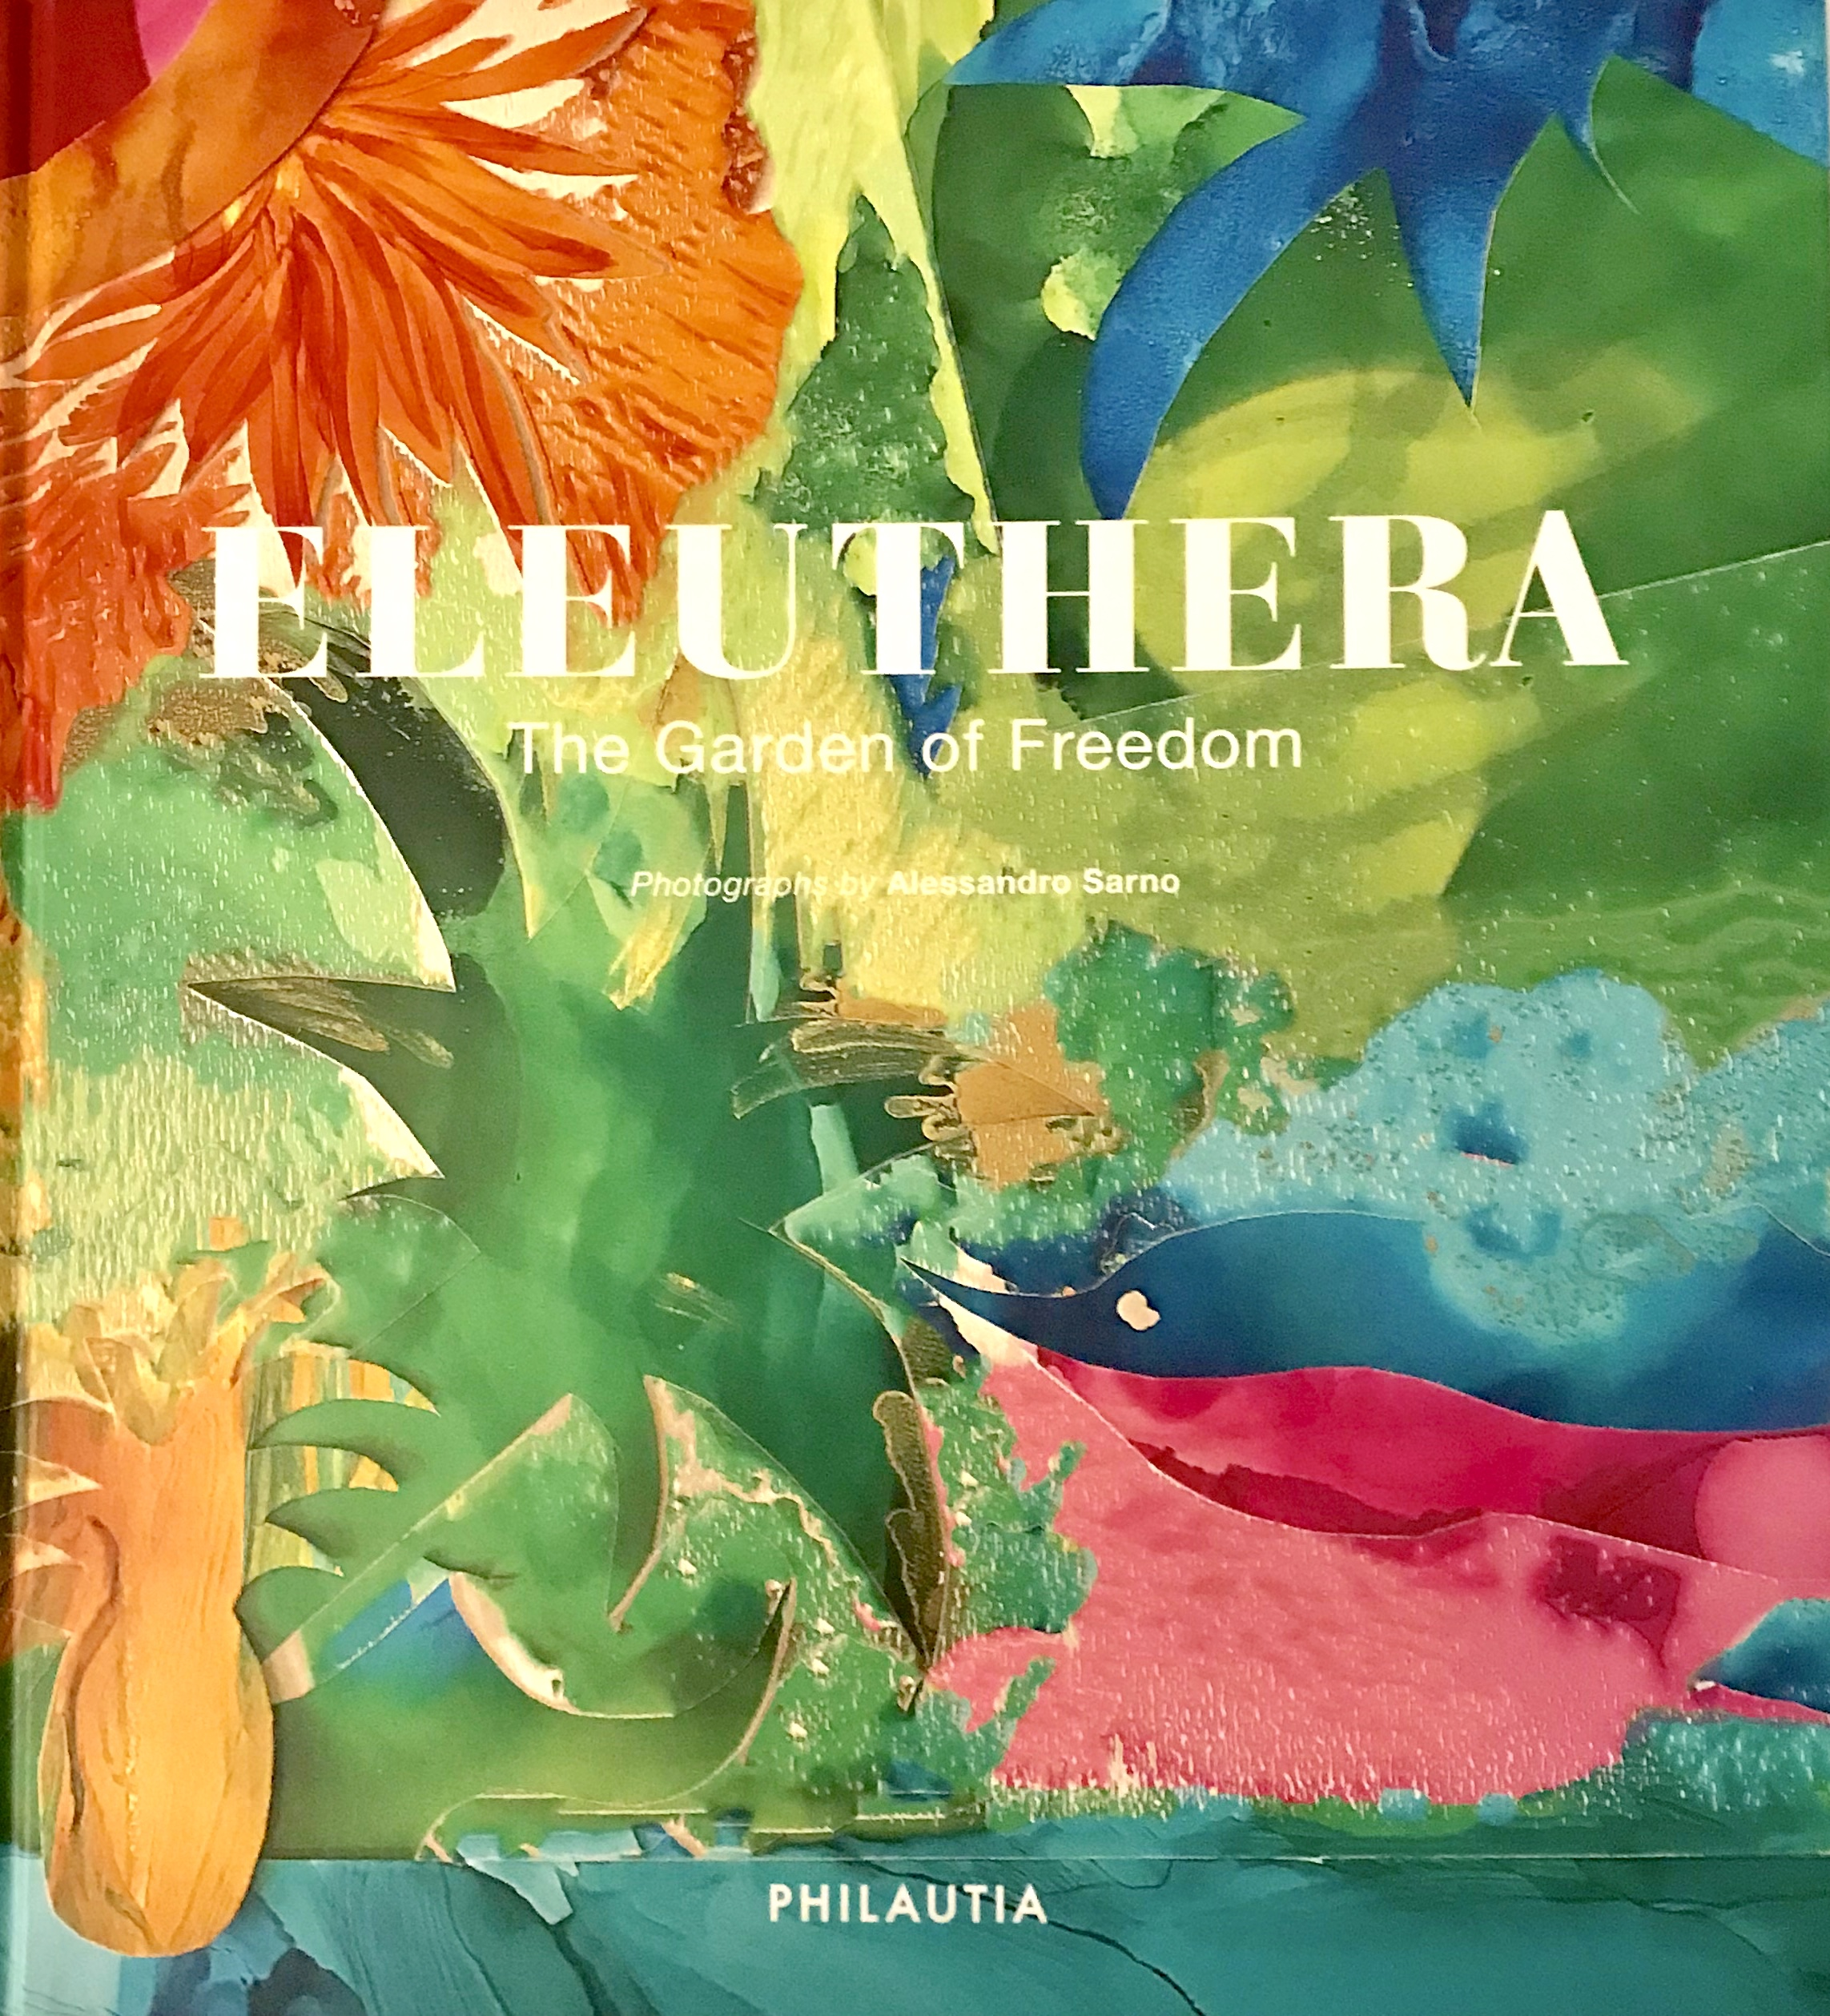 Art for Cover of   Eleuthera: Garden of Freedom   coffee table book by Alessandro Sarno, published by Philautia Press ©2018